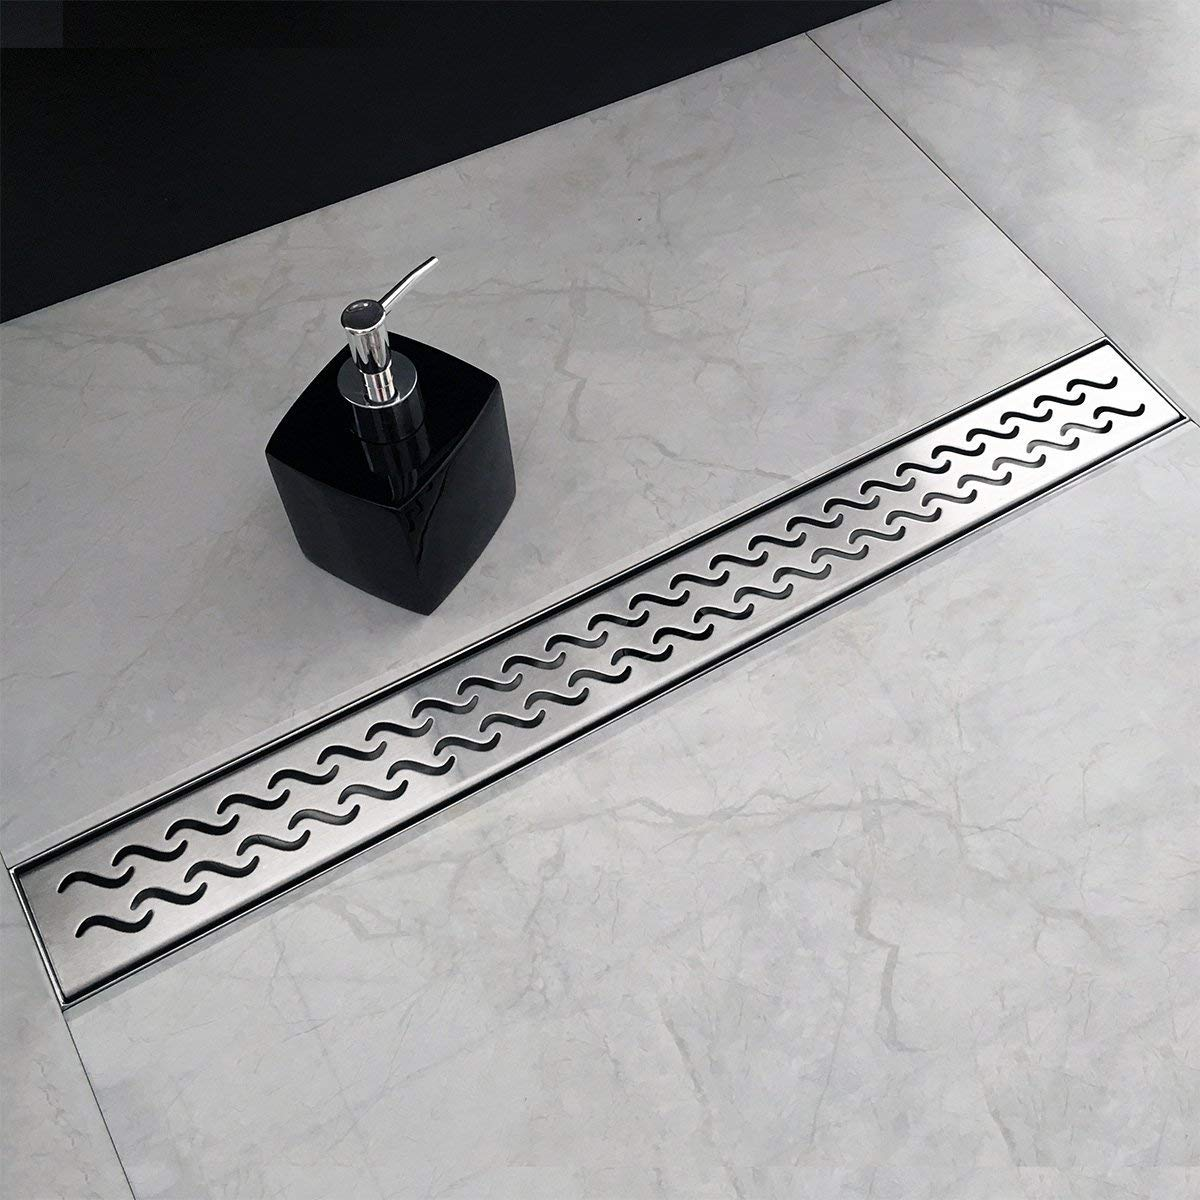 Neodrain 24 Inch Rectangular Linear Shower Drain with Slight Sea Grate, Brushed 304 Stainless Steel Bathroom Floor Drain,Shower Floor Drain Includes Adjustable Leveling Feet, Hair Strainer